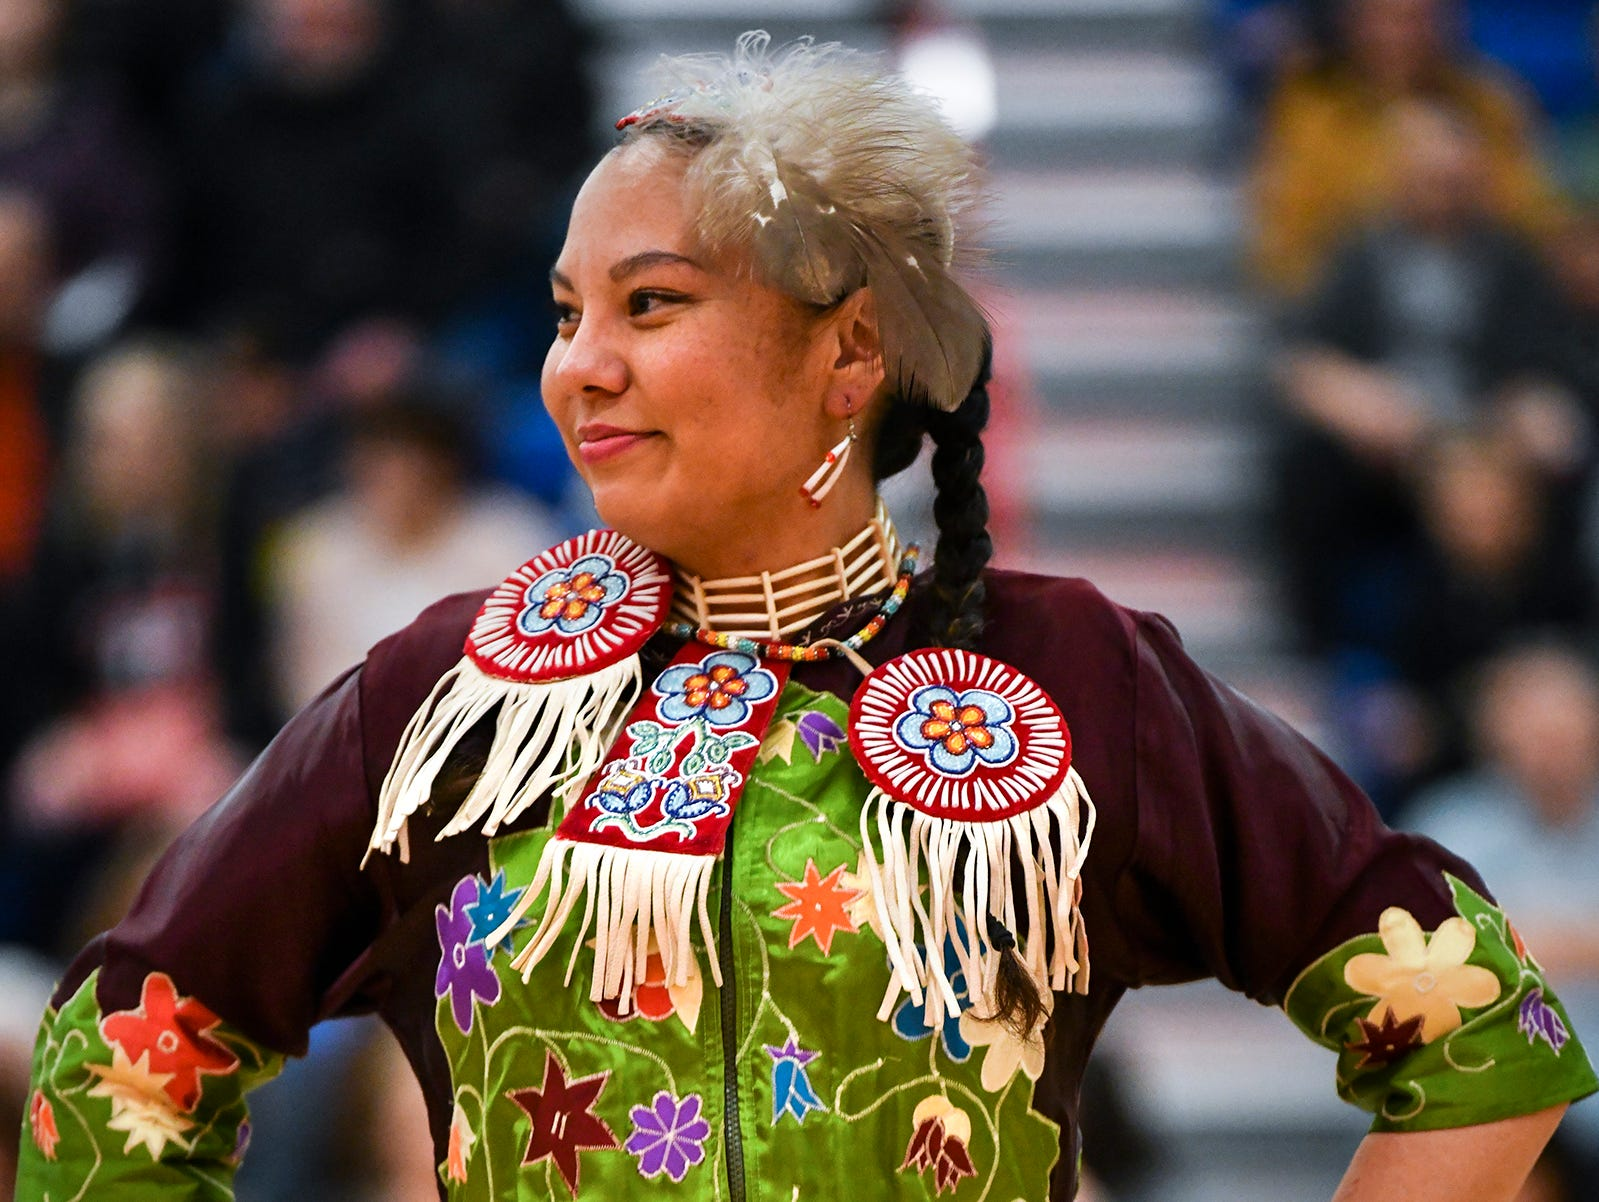 Tara Novak smiles while dancing during the 25th annual American Indian Center Powwow Saturday, April 13, at Apollo High School in St. Cloud.